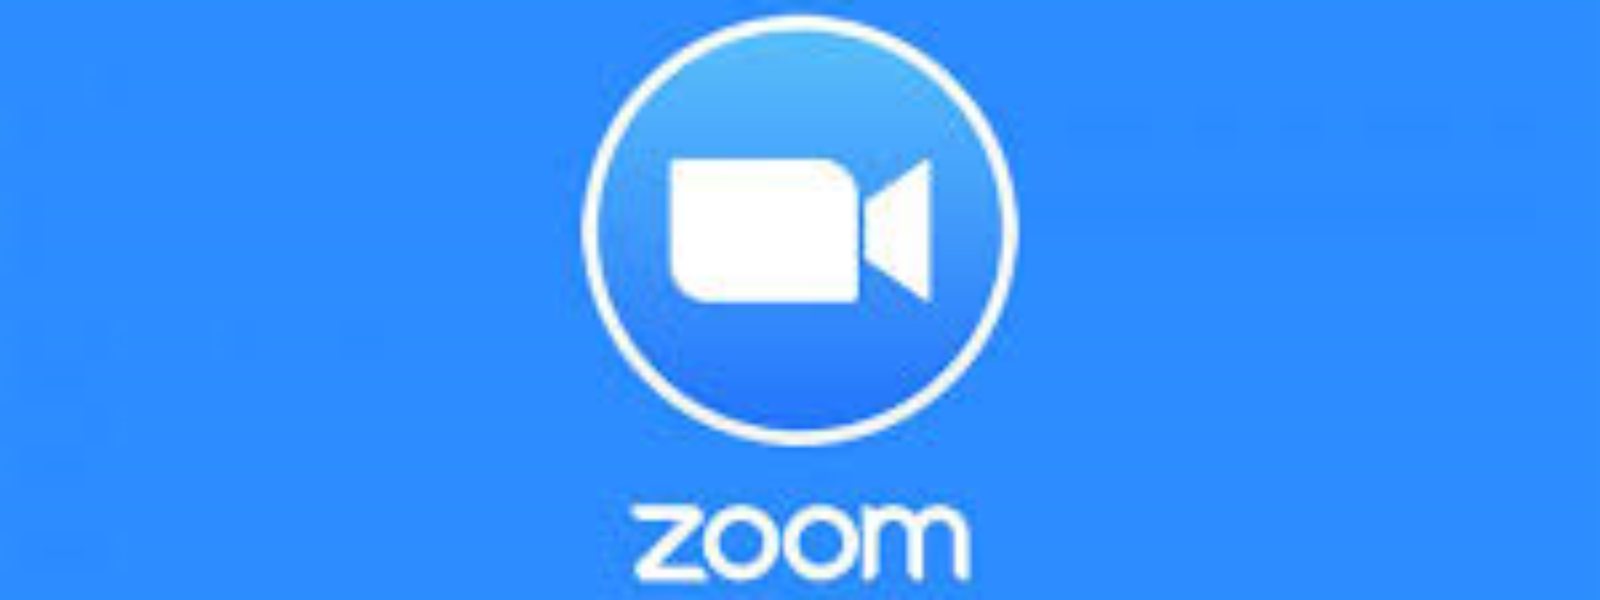 Zoom church service